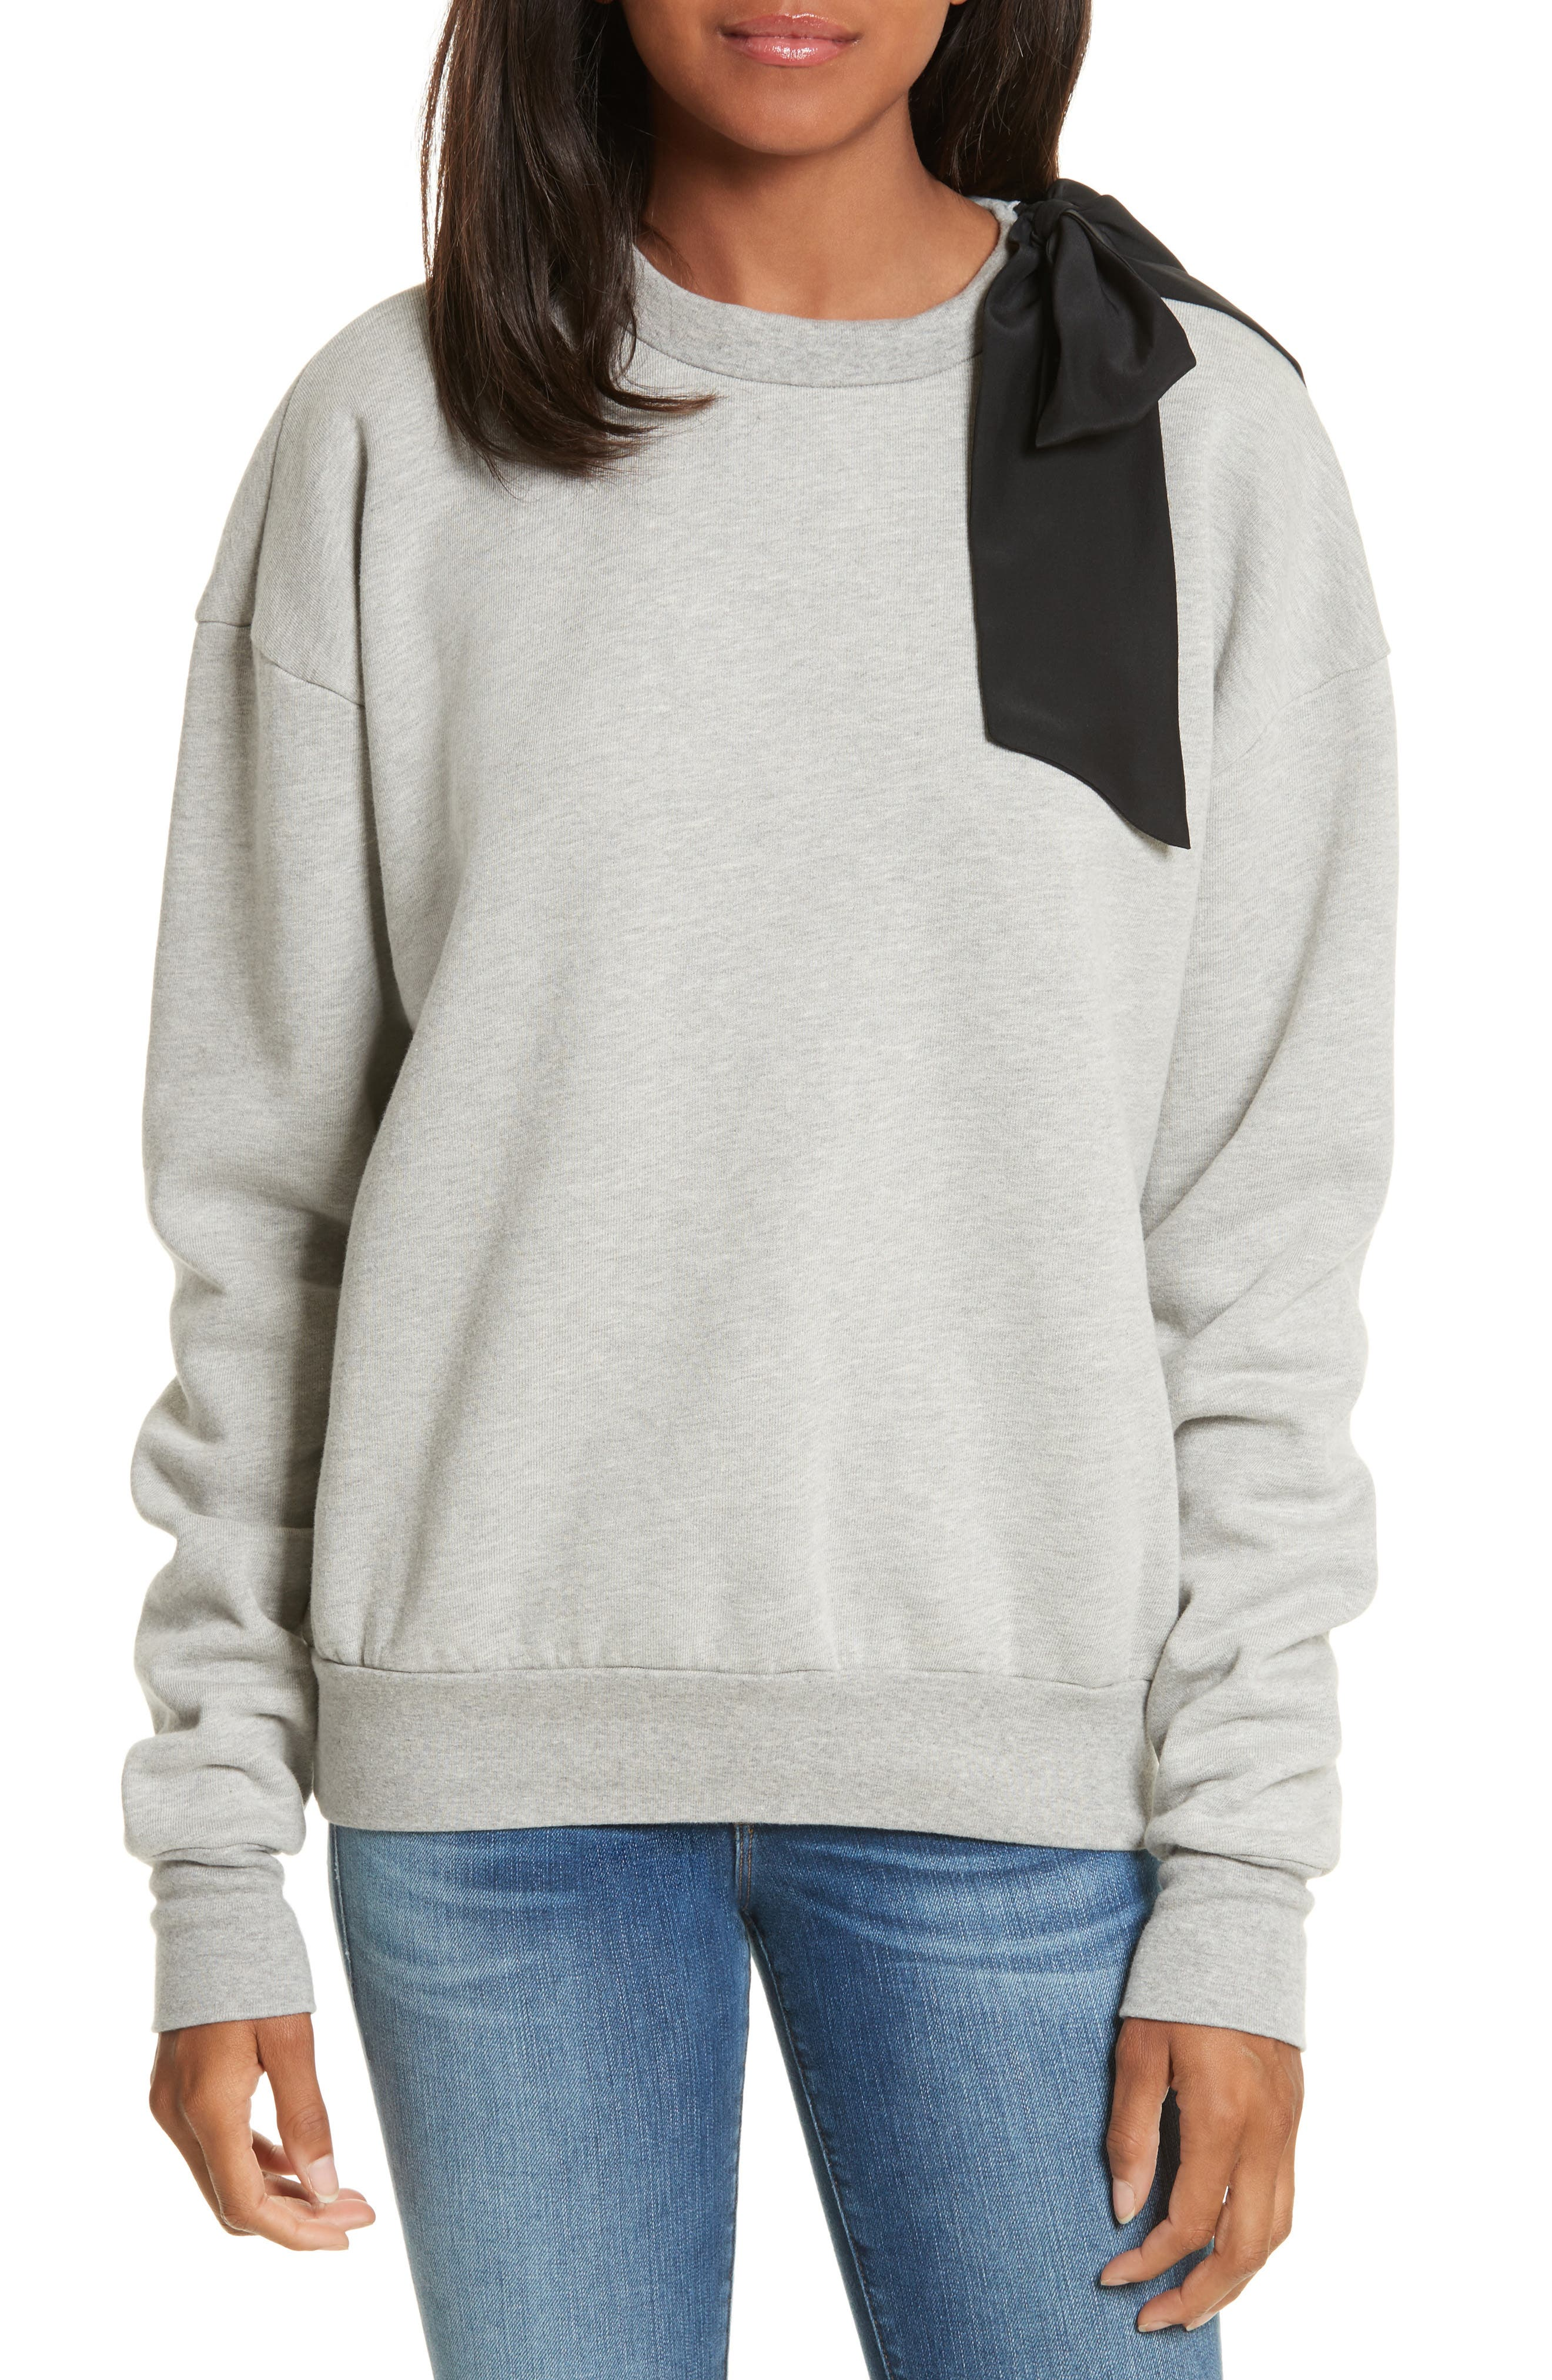 Bow Sweatshirt,                             Main thumbnail 1, color,                             Gris